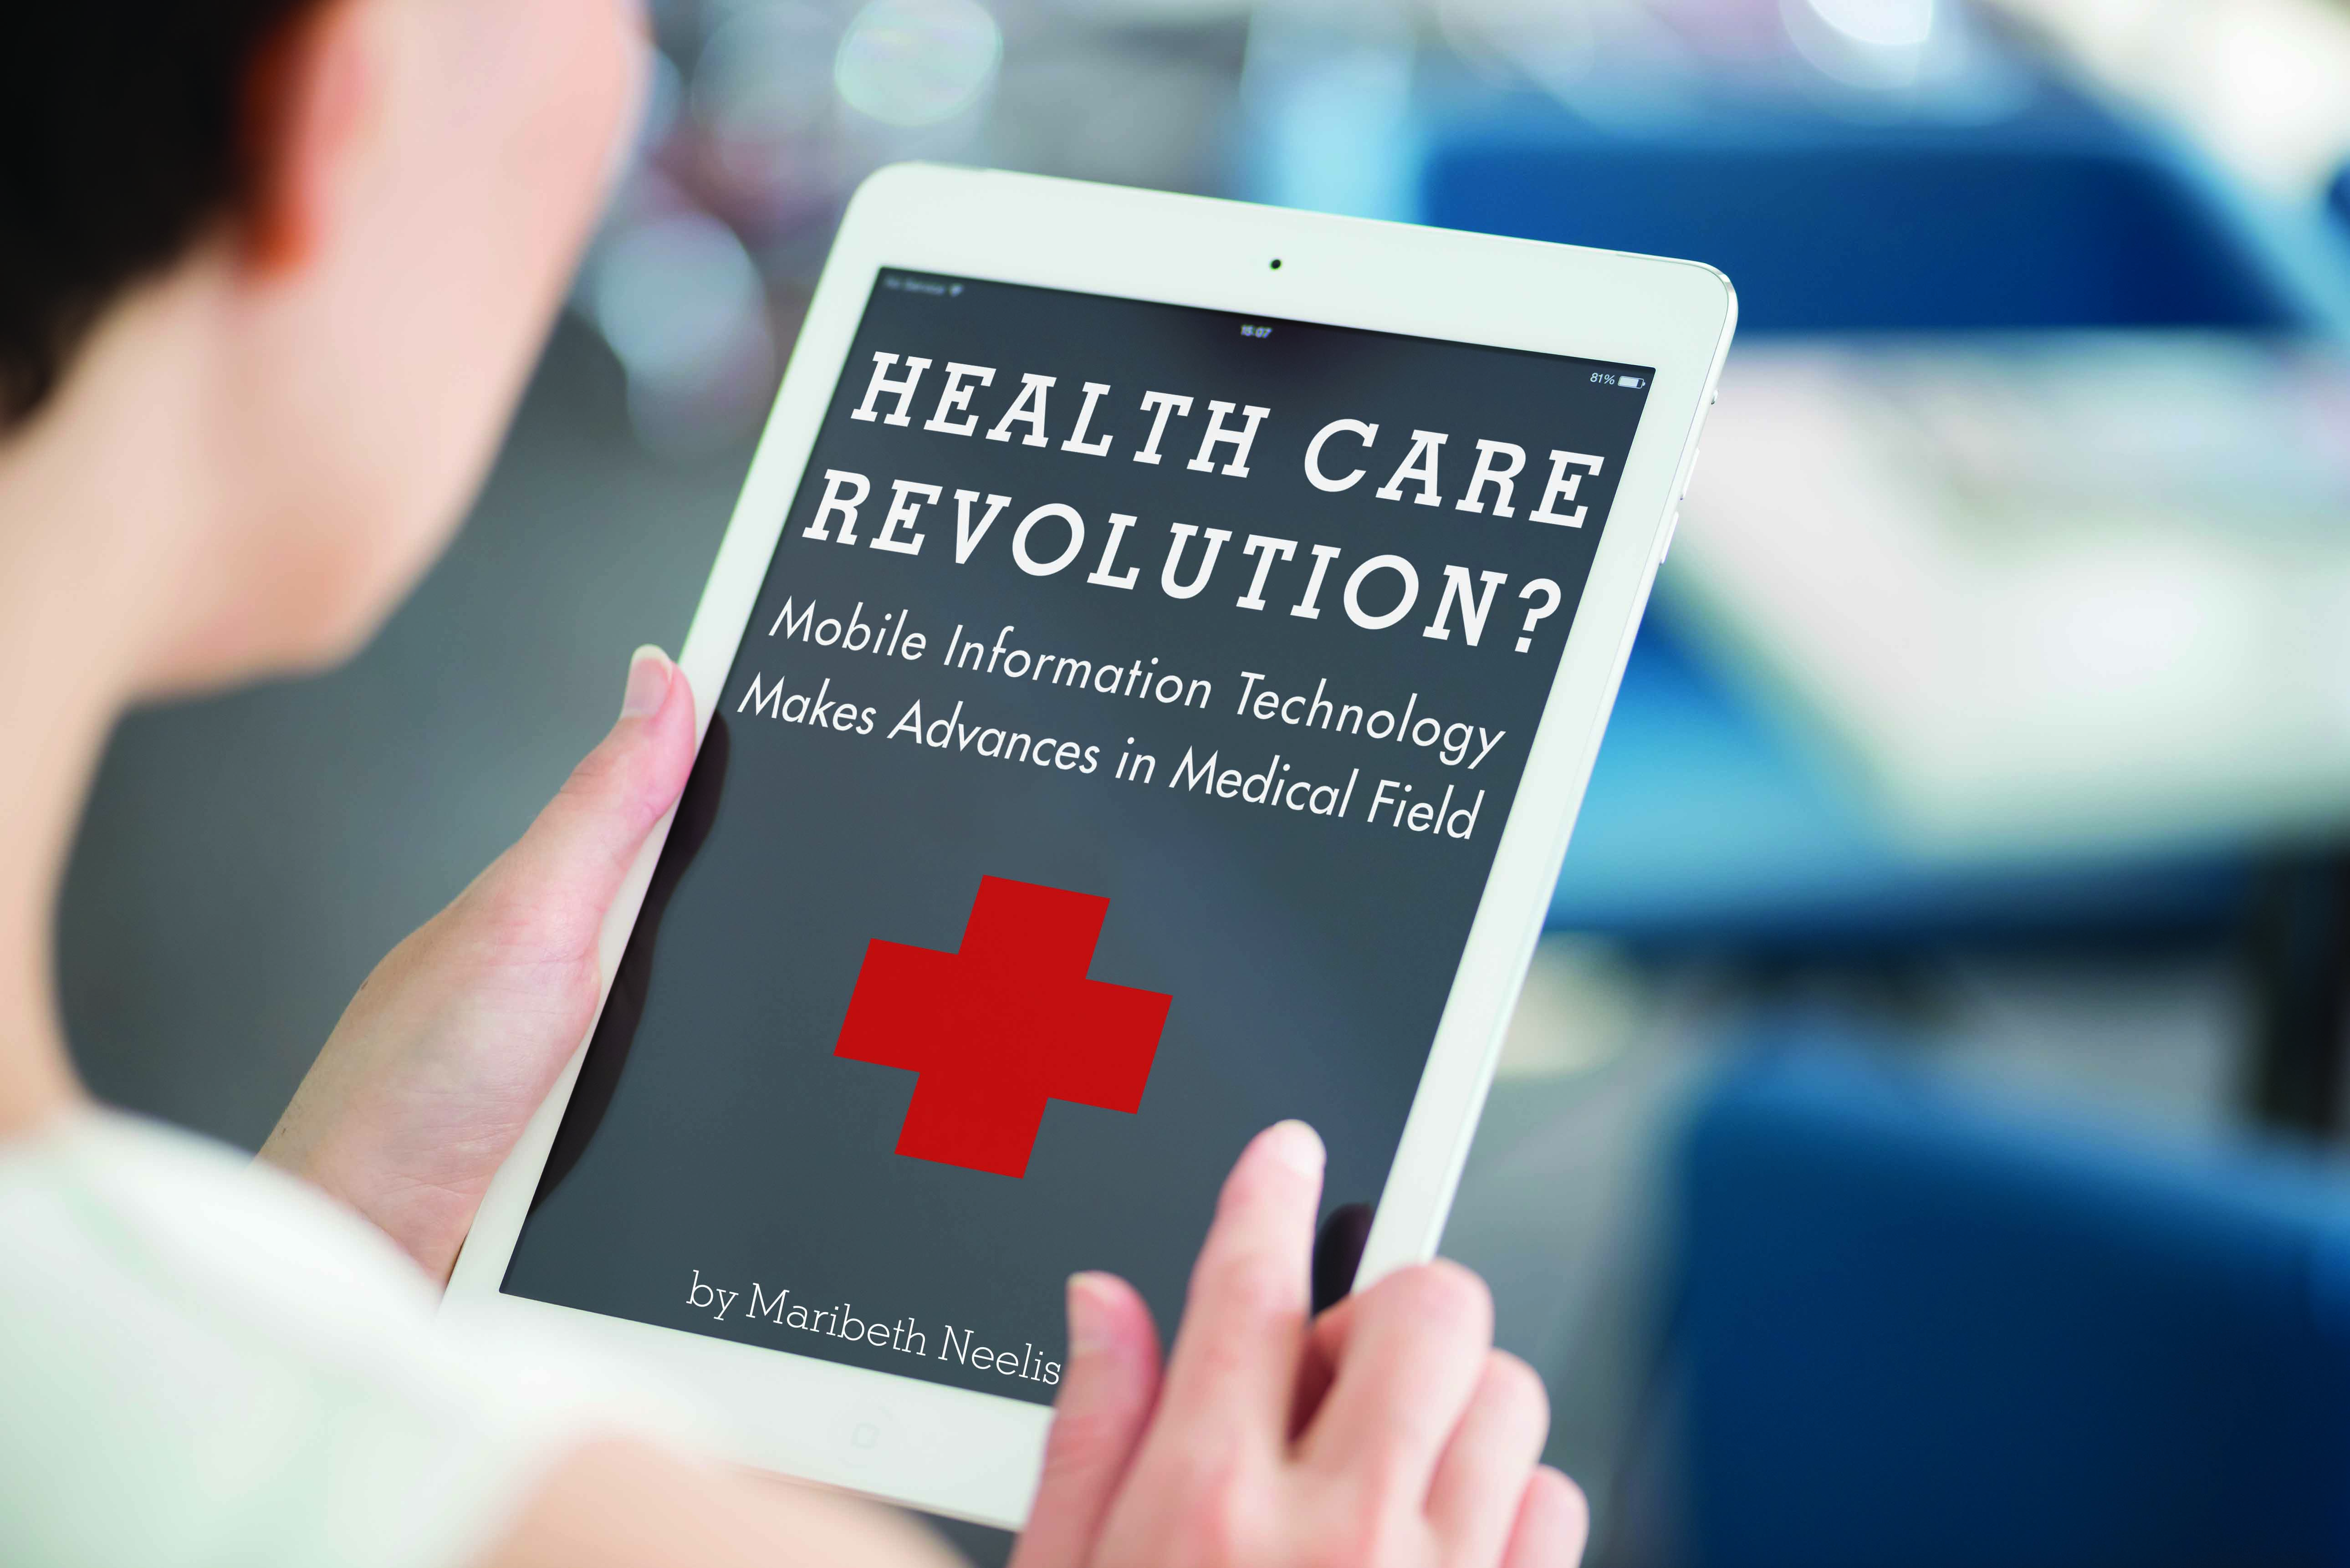 health mobile information technology